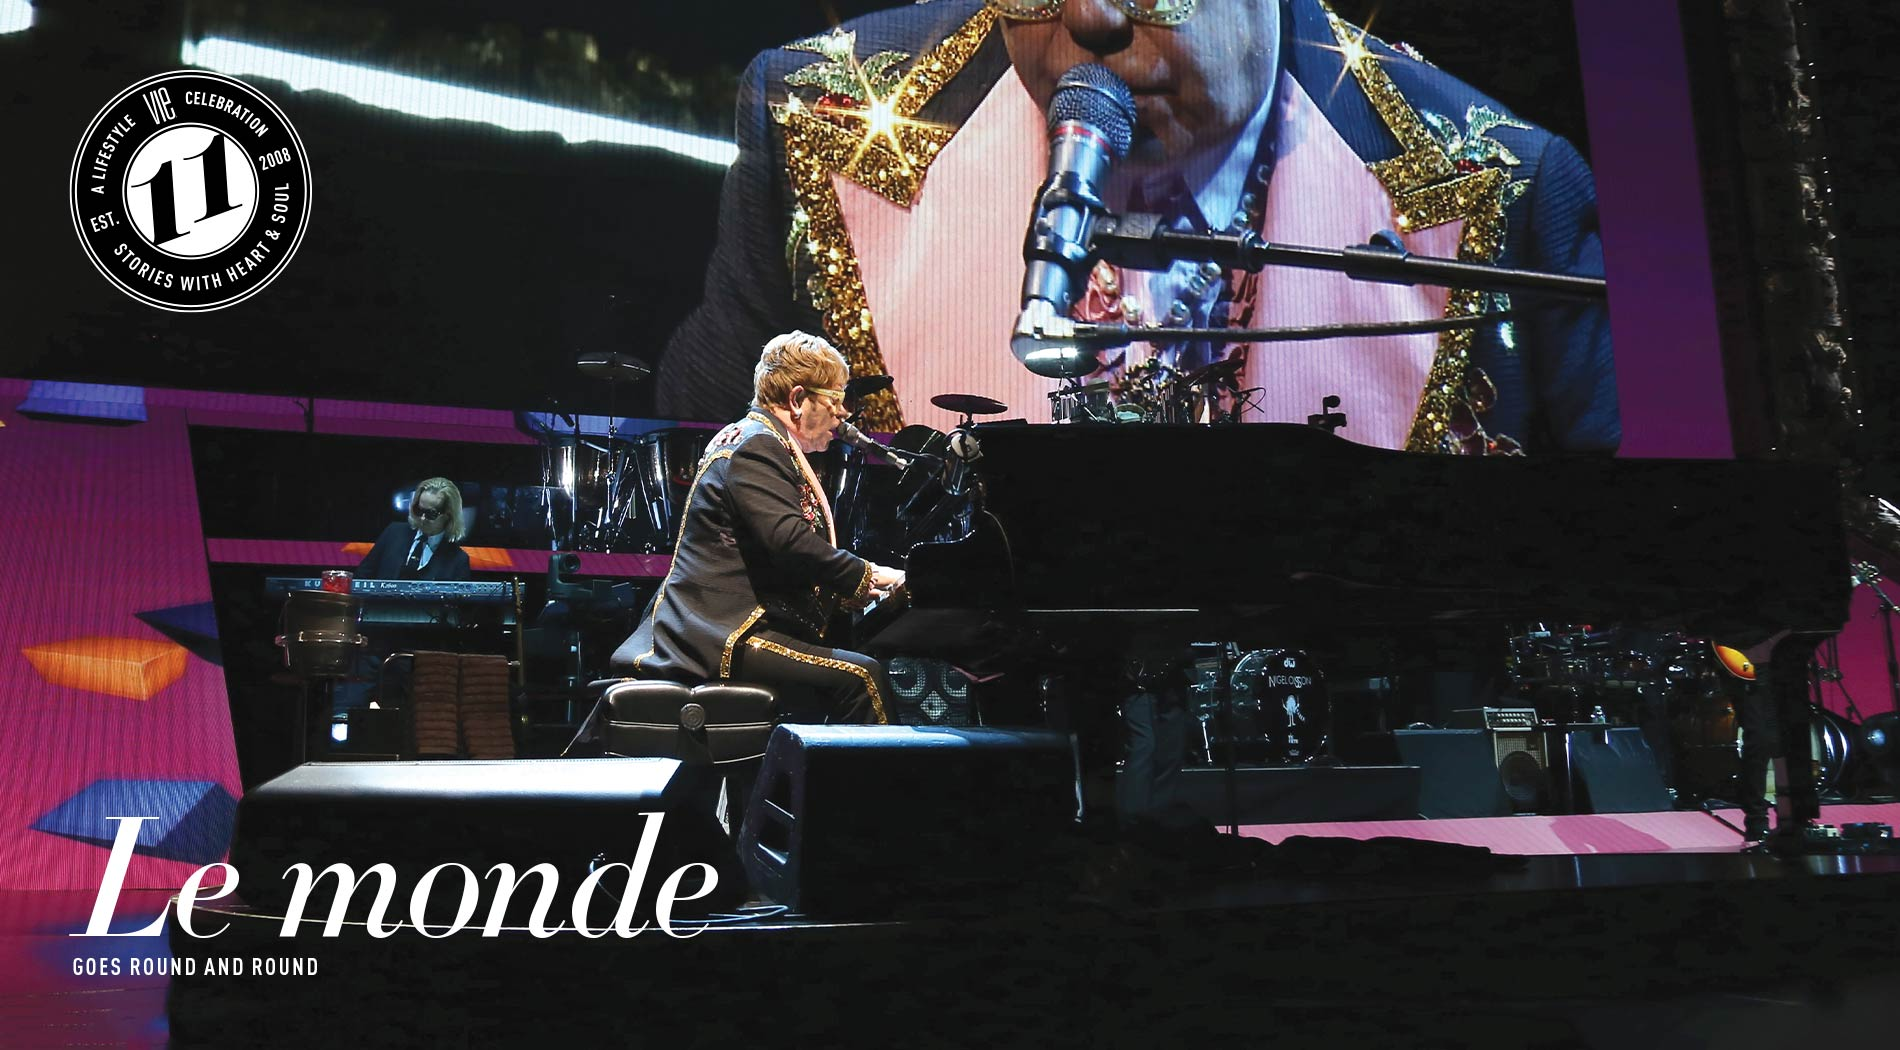 VIE Magazine - Special Entertainment Edition - March 2019 - Le Monde